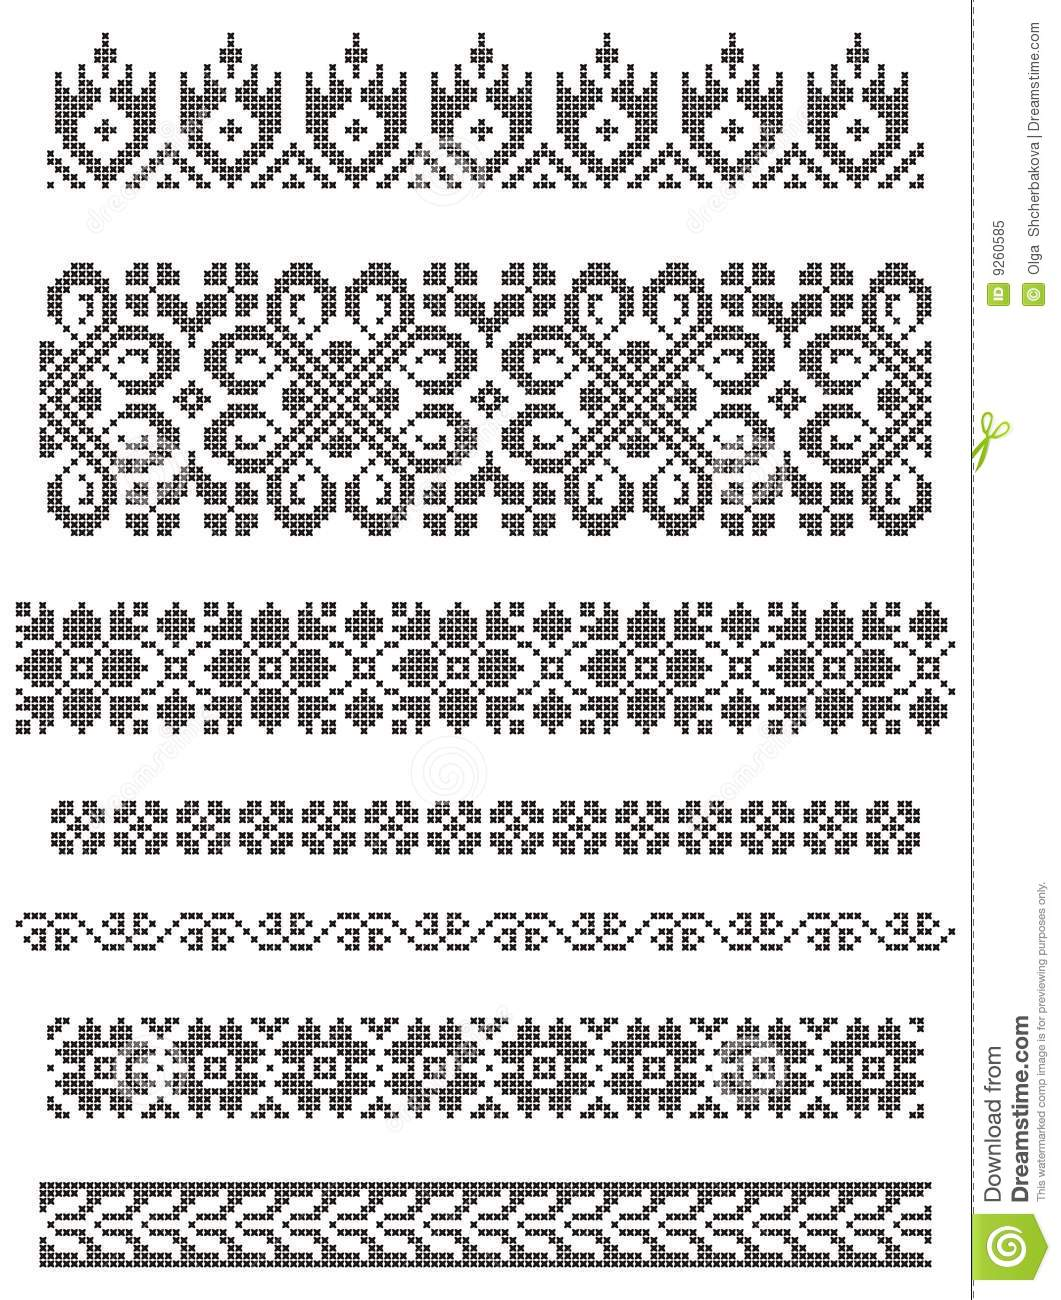 Decorative frames set download free vector art stock graphics - Borders Embroidery Royalty Free Stock Photo Image 9260585